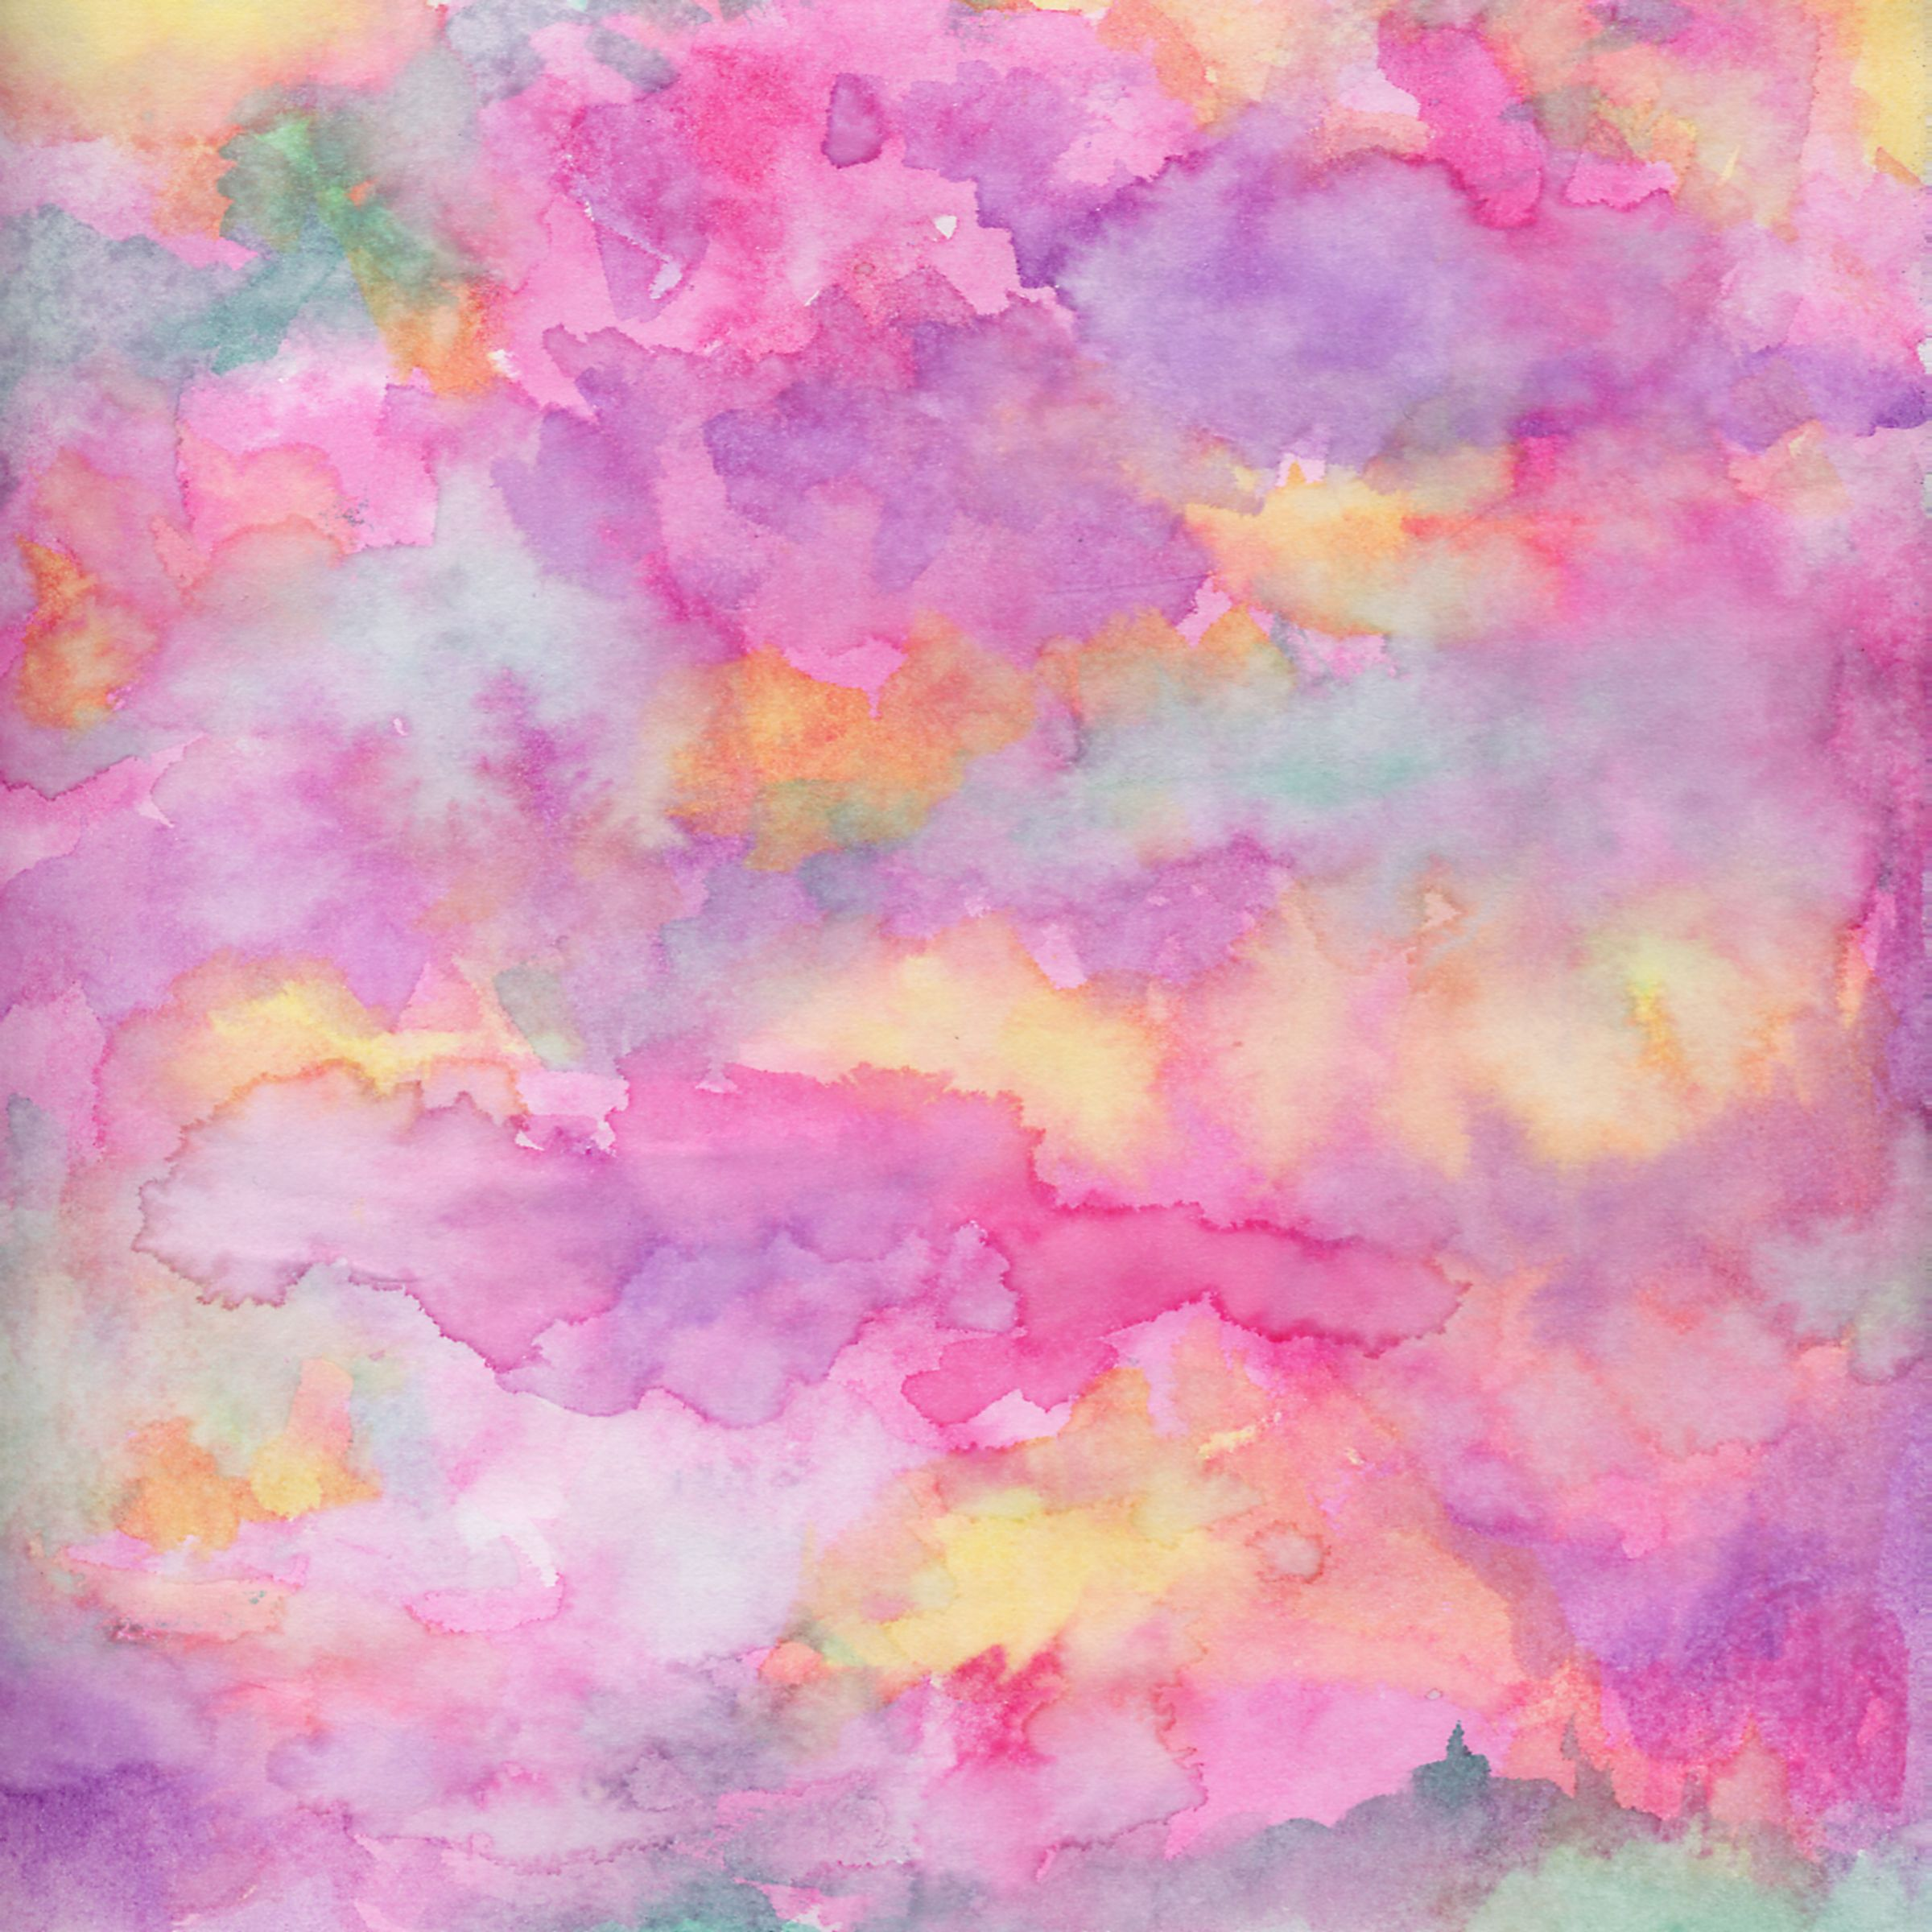 watercolor texture background 12x12 inches for